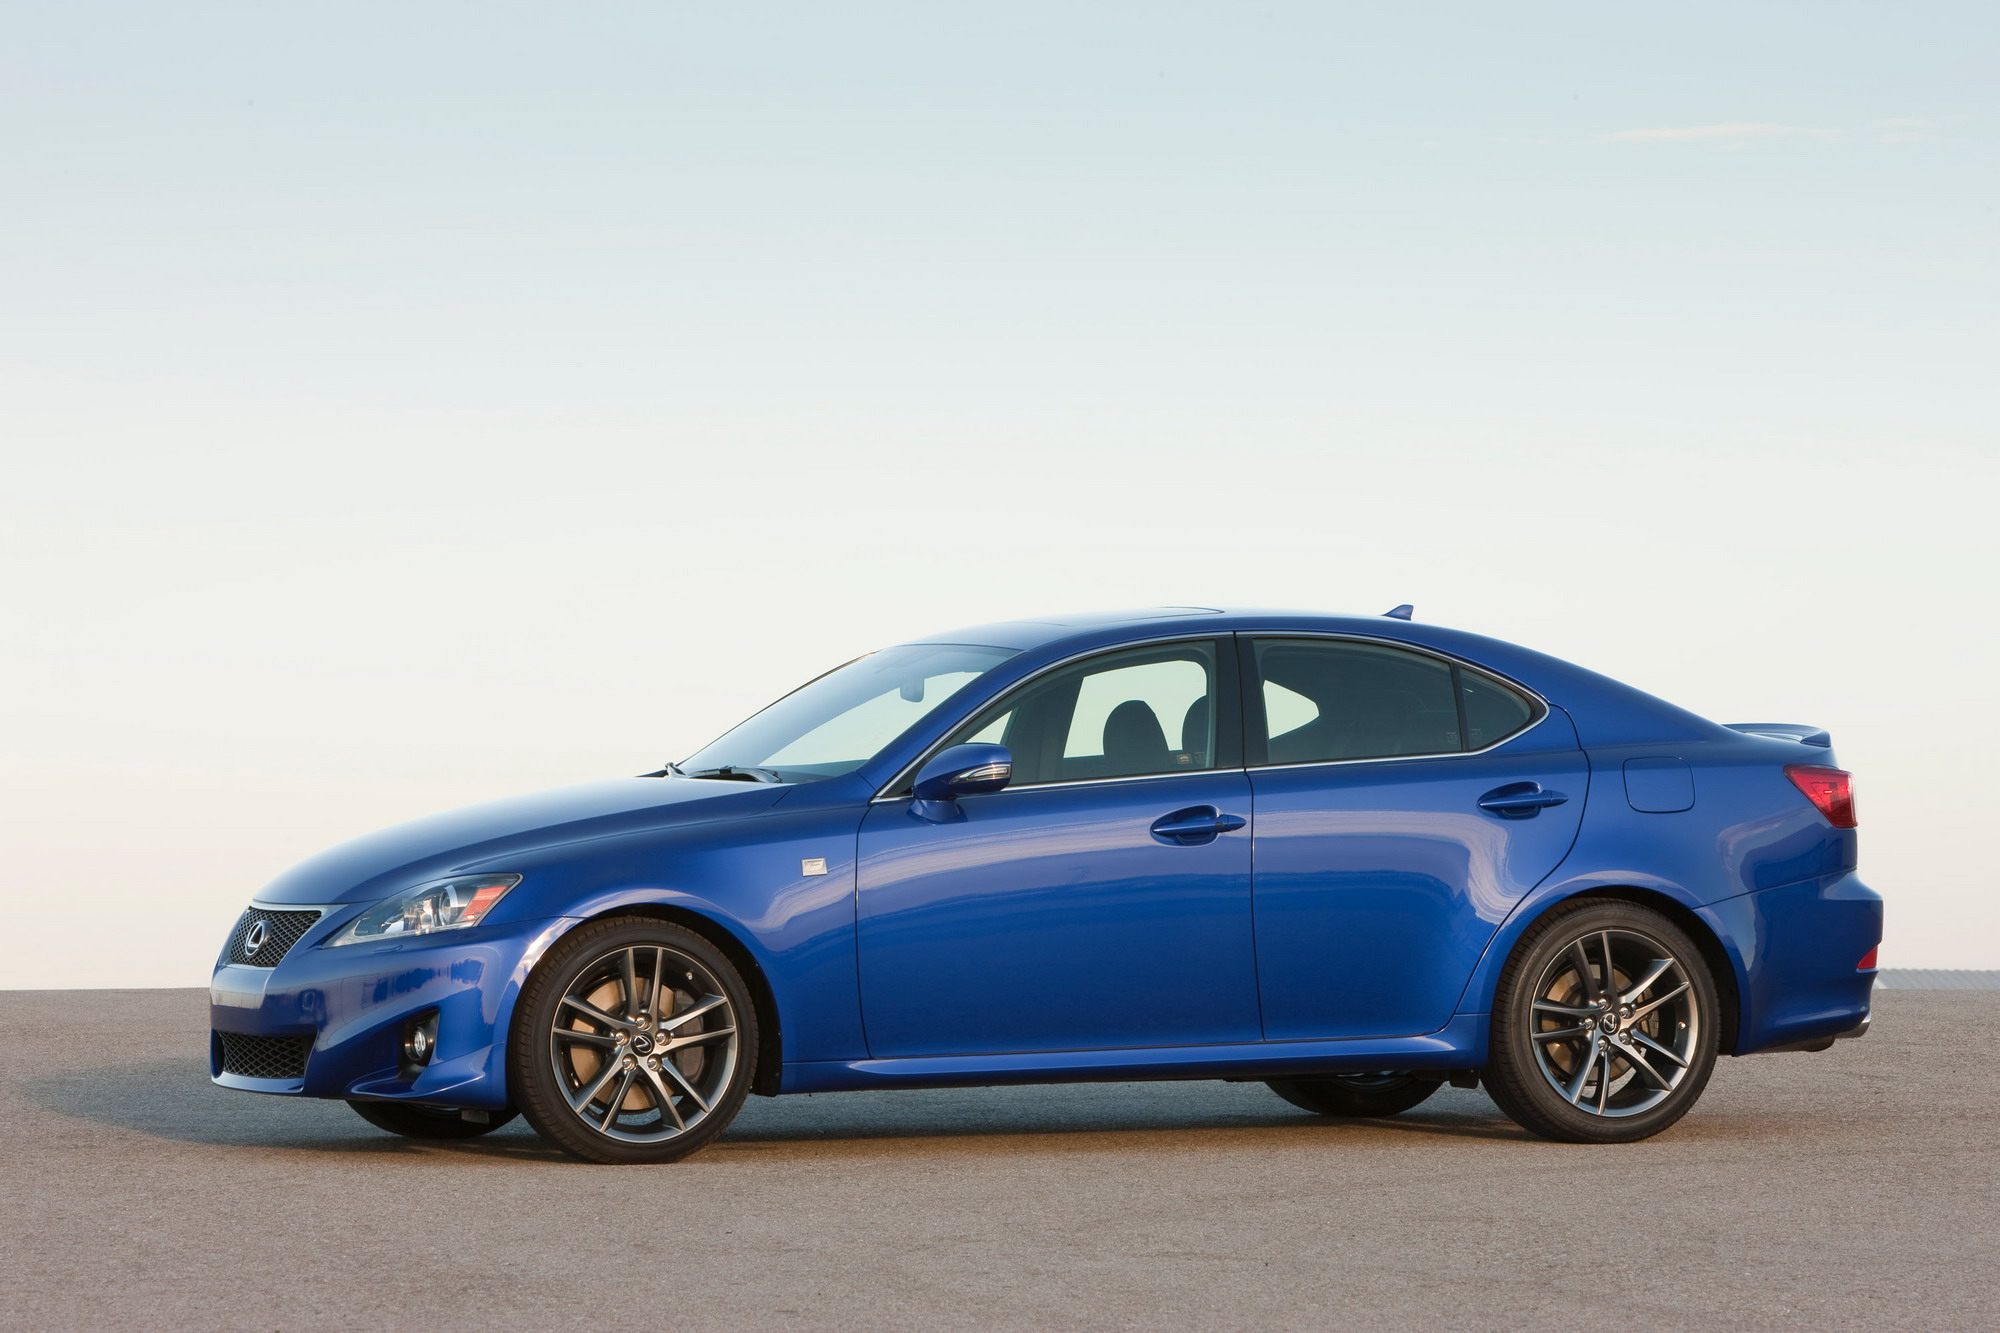 2011 Lexus IS 350 F Sport | Top Speed. »